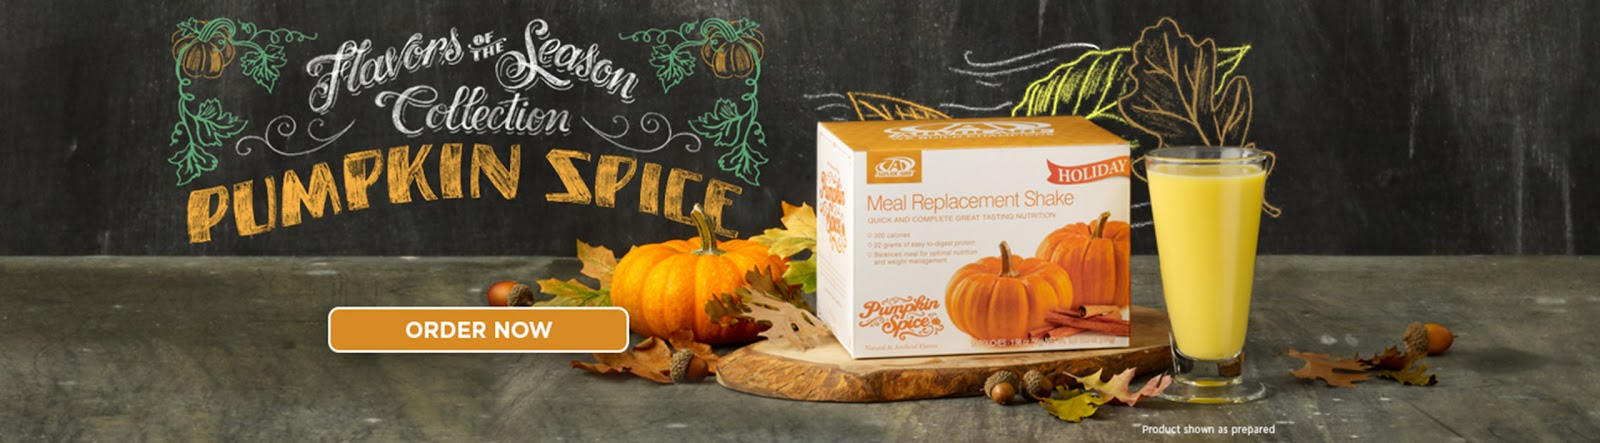 Pumpkin Spice Meal Replacement Shake